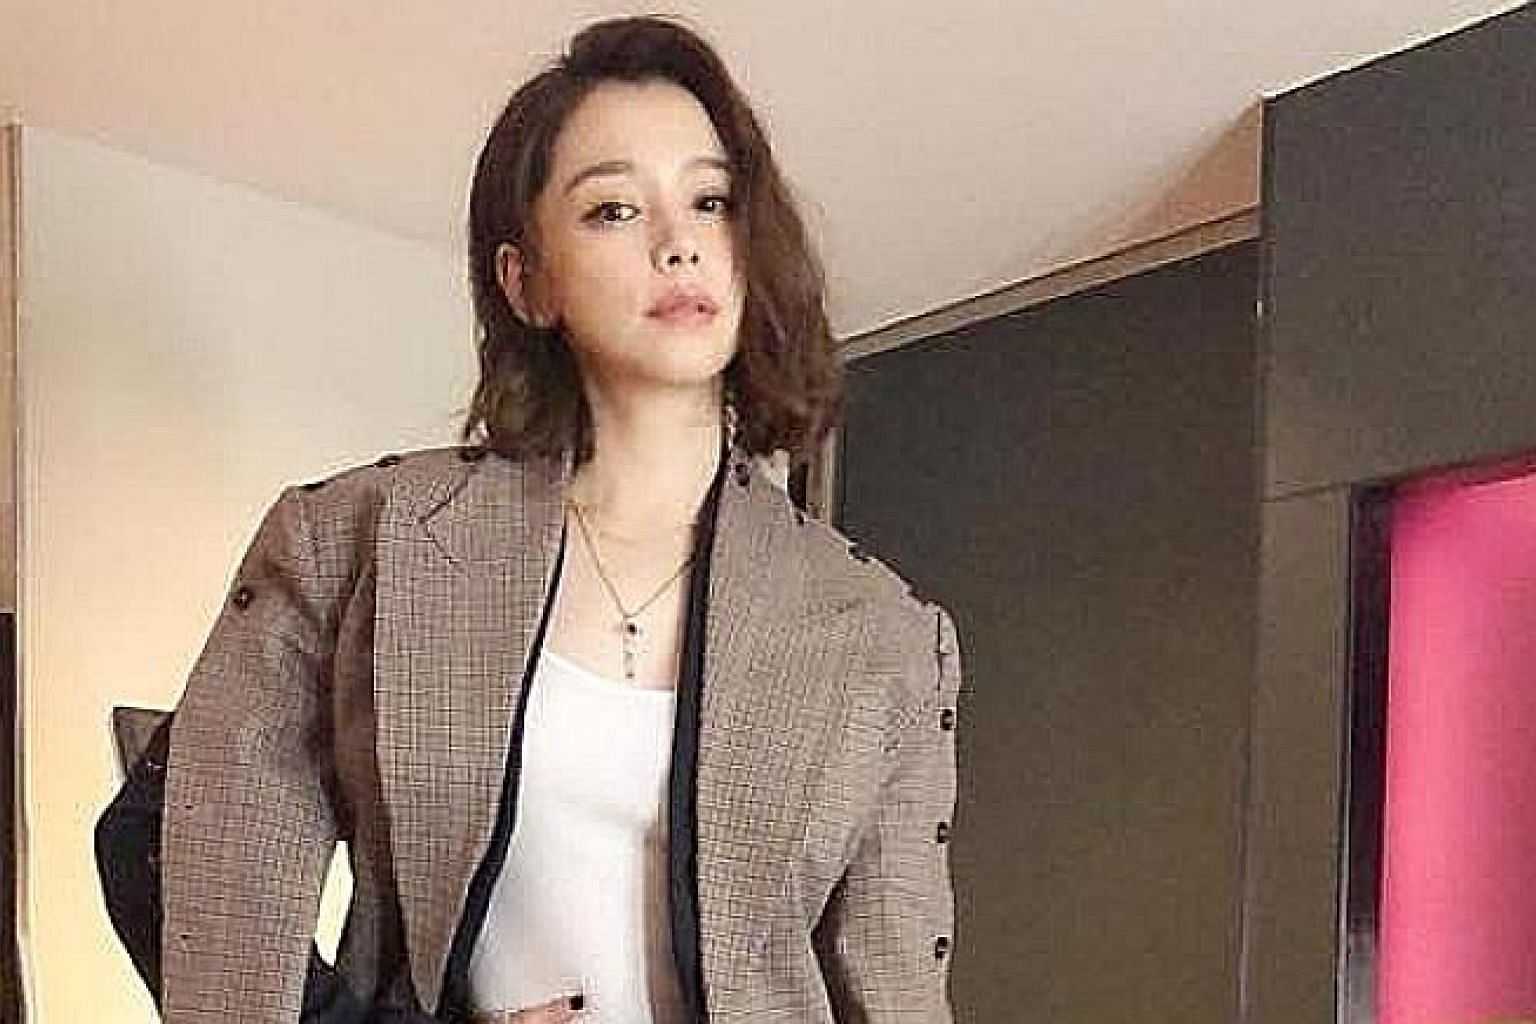 HSU RANTS ABOUT MYSTERY MAN: Who is she referring to in her Facebook post? That was the question on people's minds when Taiwanese singer-actress Vivian Hsu, 43, flew into a rare rage on social media. In the post on Wednesday, she wrote in striking